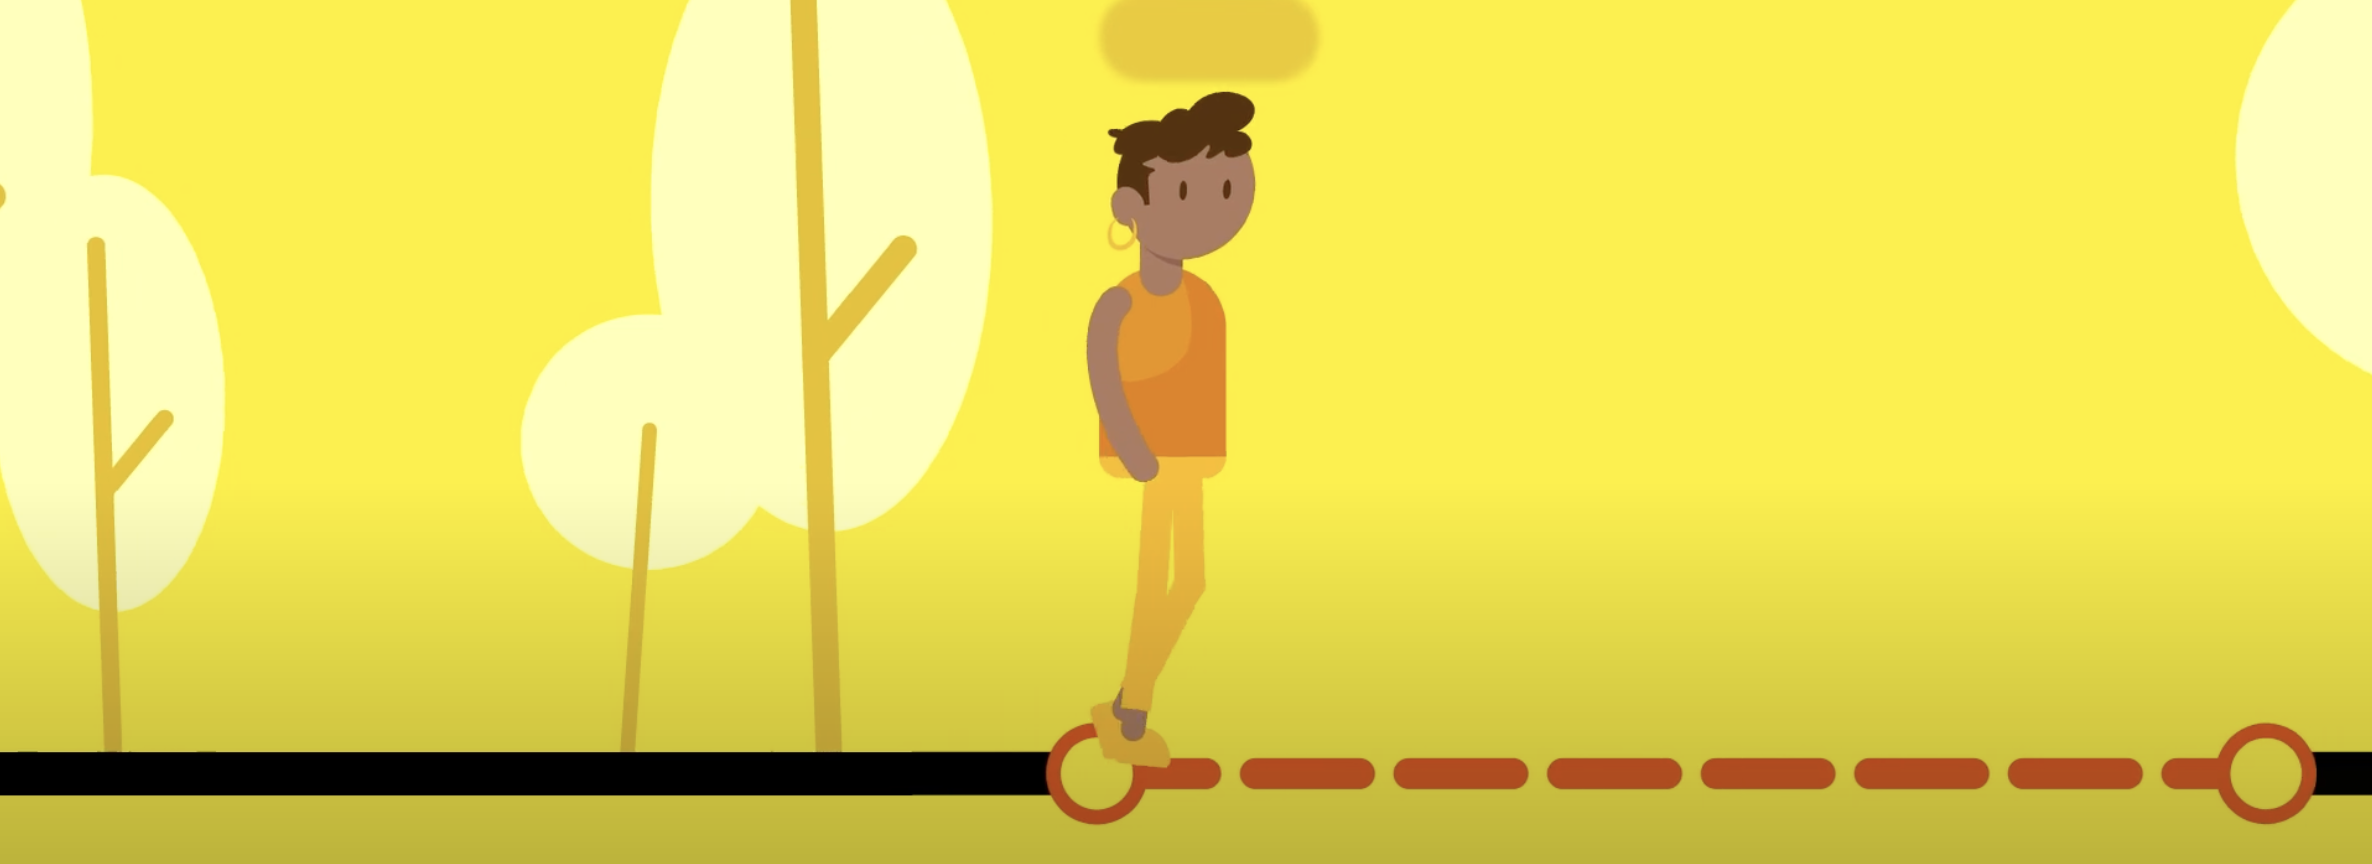 Illustration of a student walking along a path